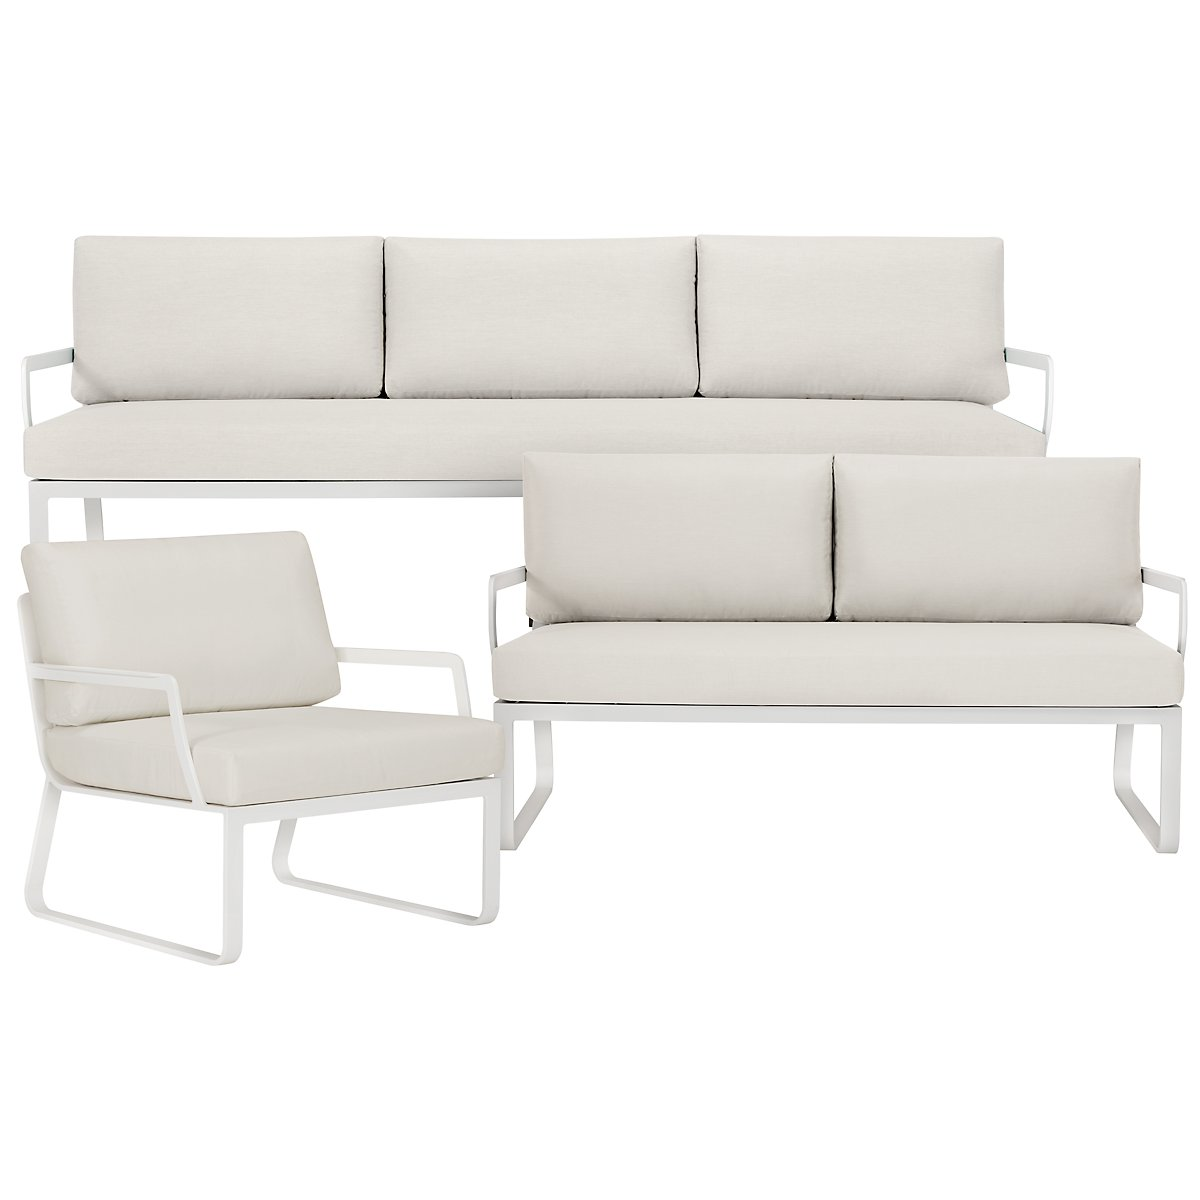 City Furniture: Ibiza White Outdoor Living Room Set